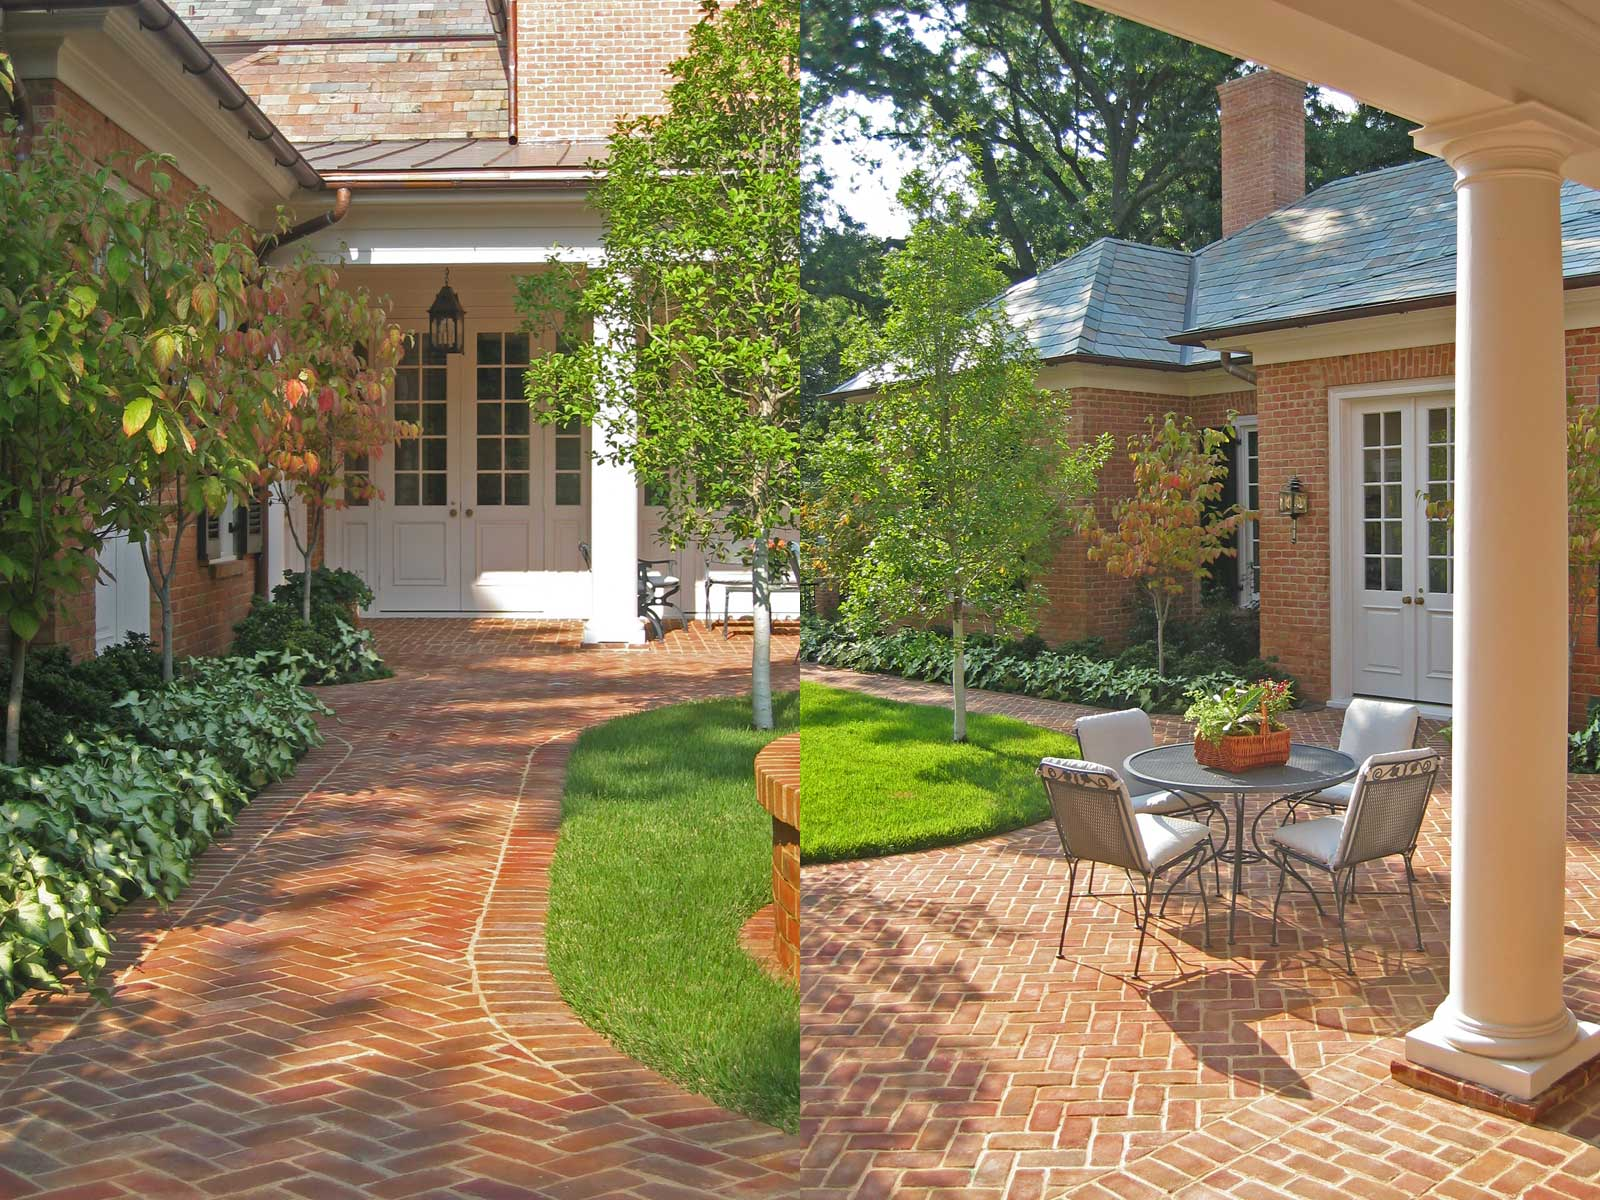 turtle-creek_walkway-&-patio.jpg